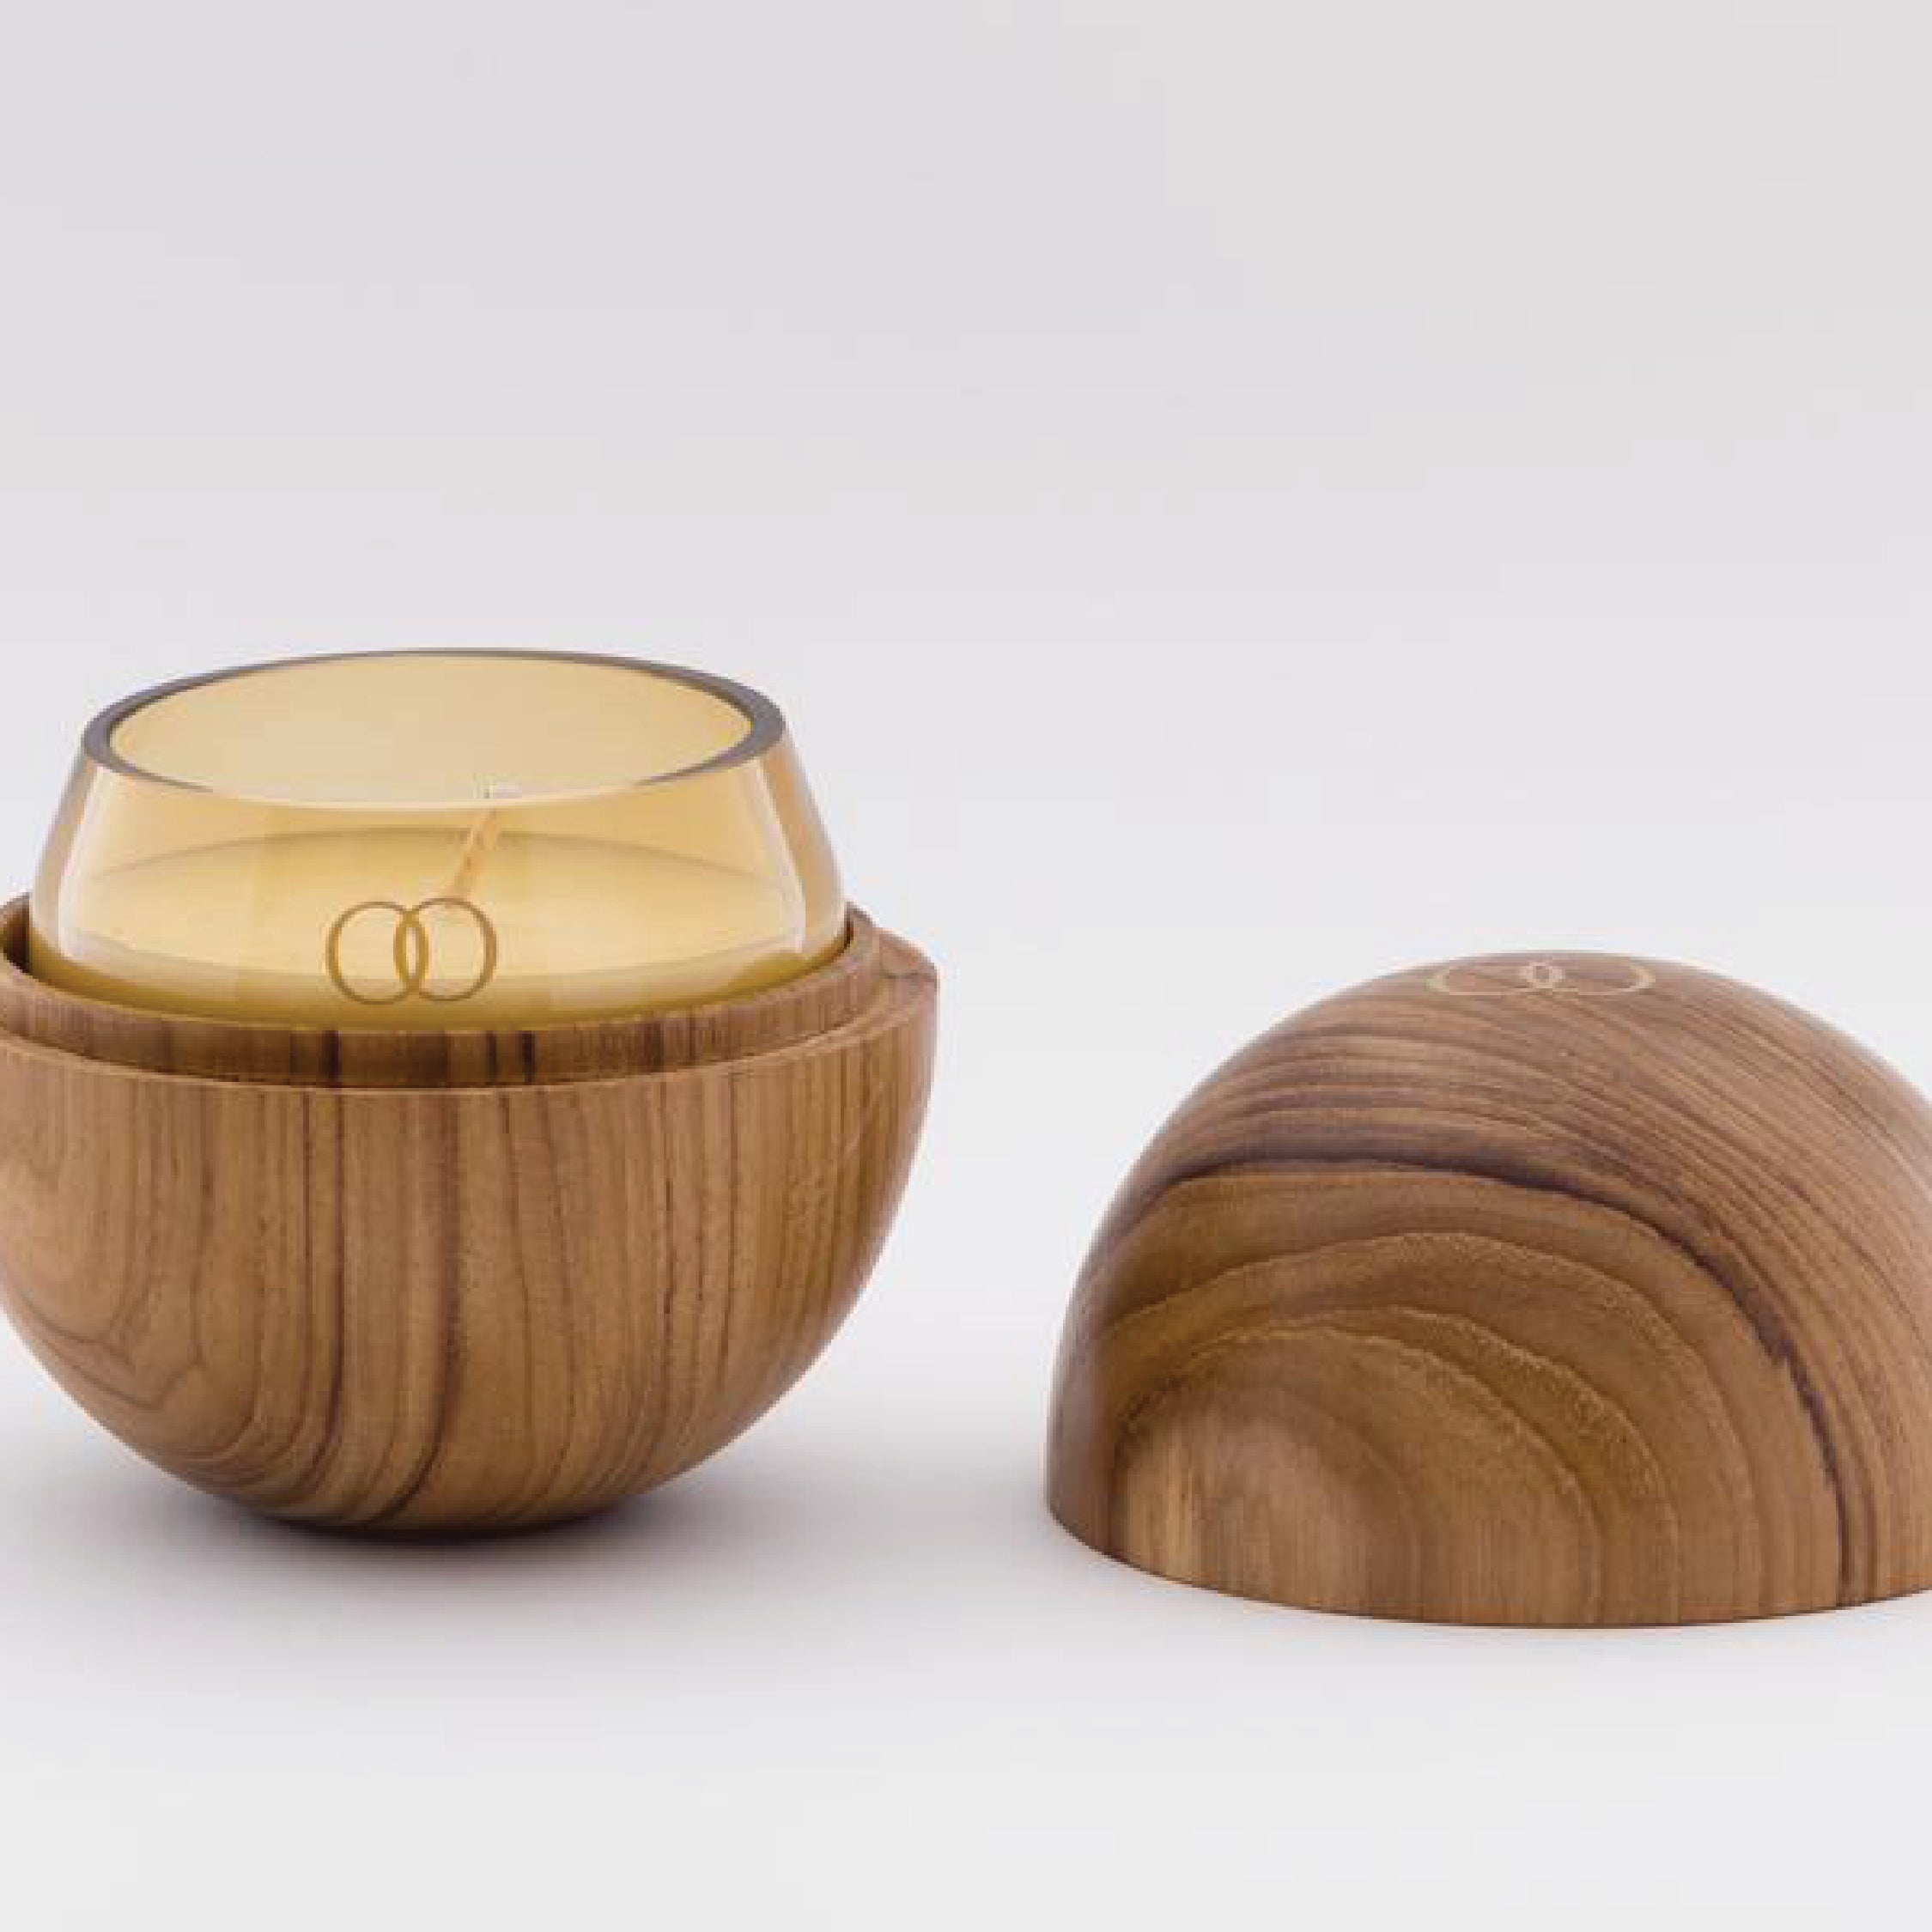 Only Orb OM - Fig & Teak Candle in Teak Orb